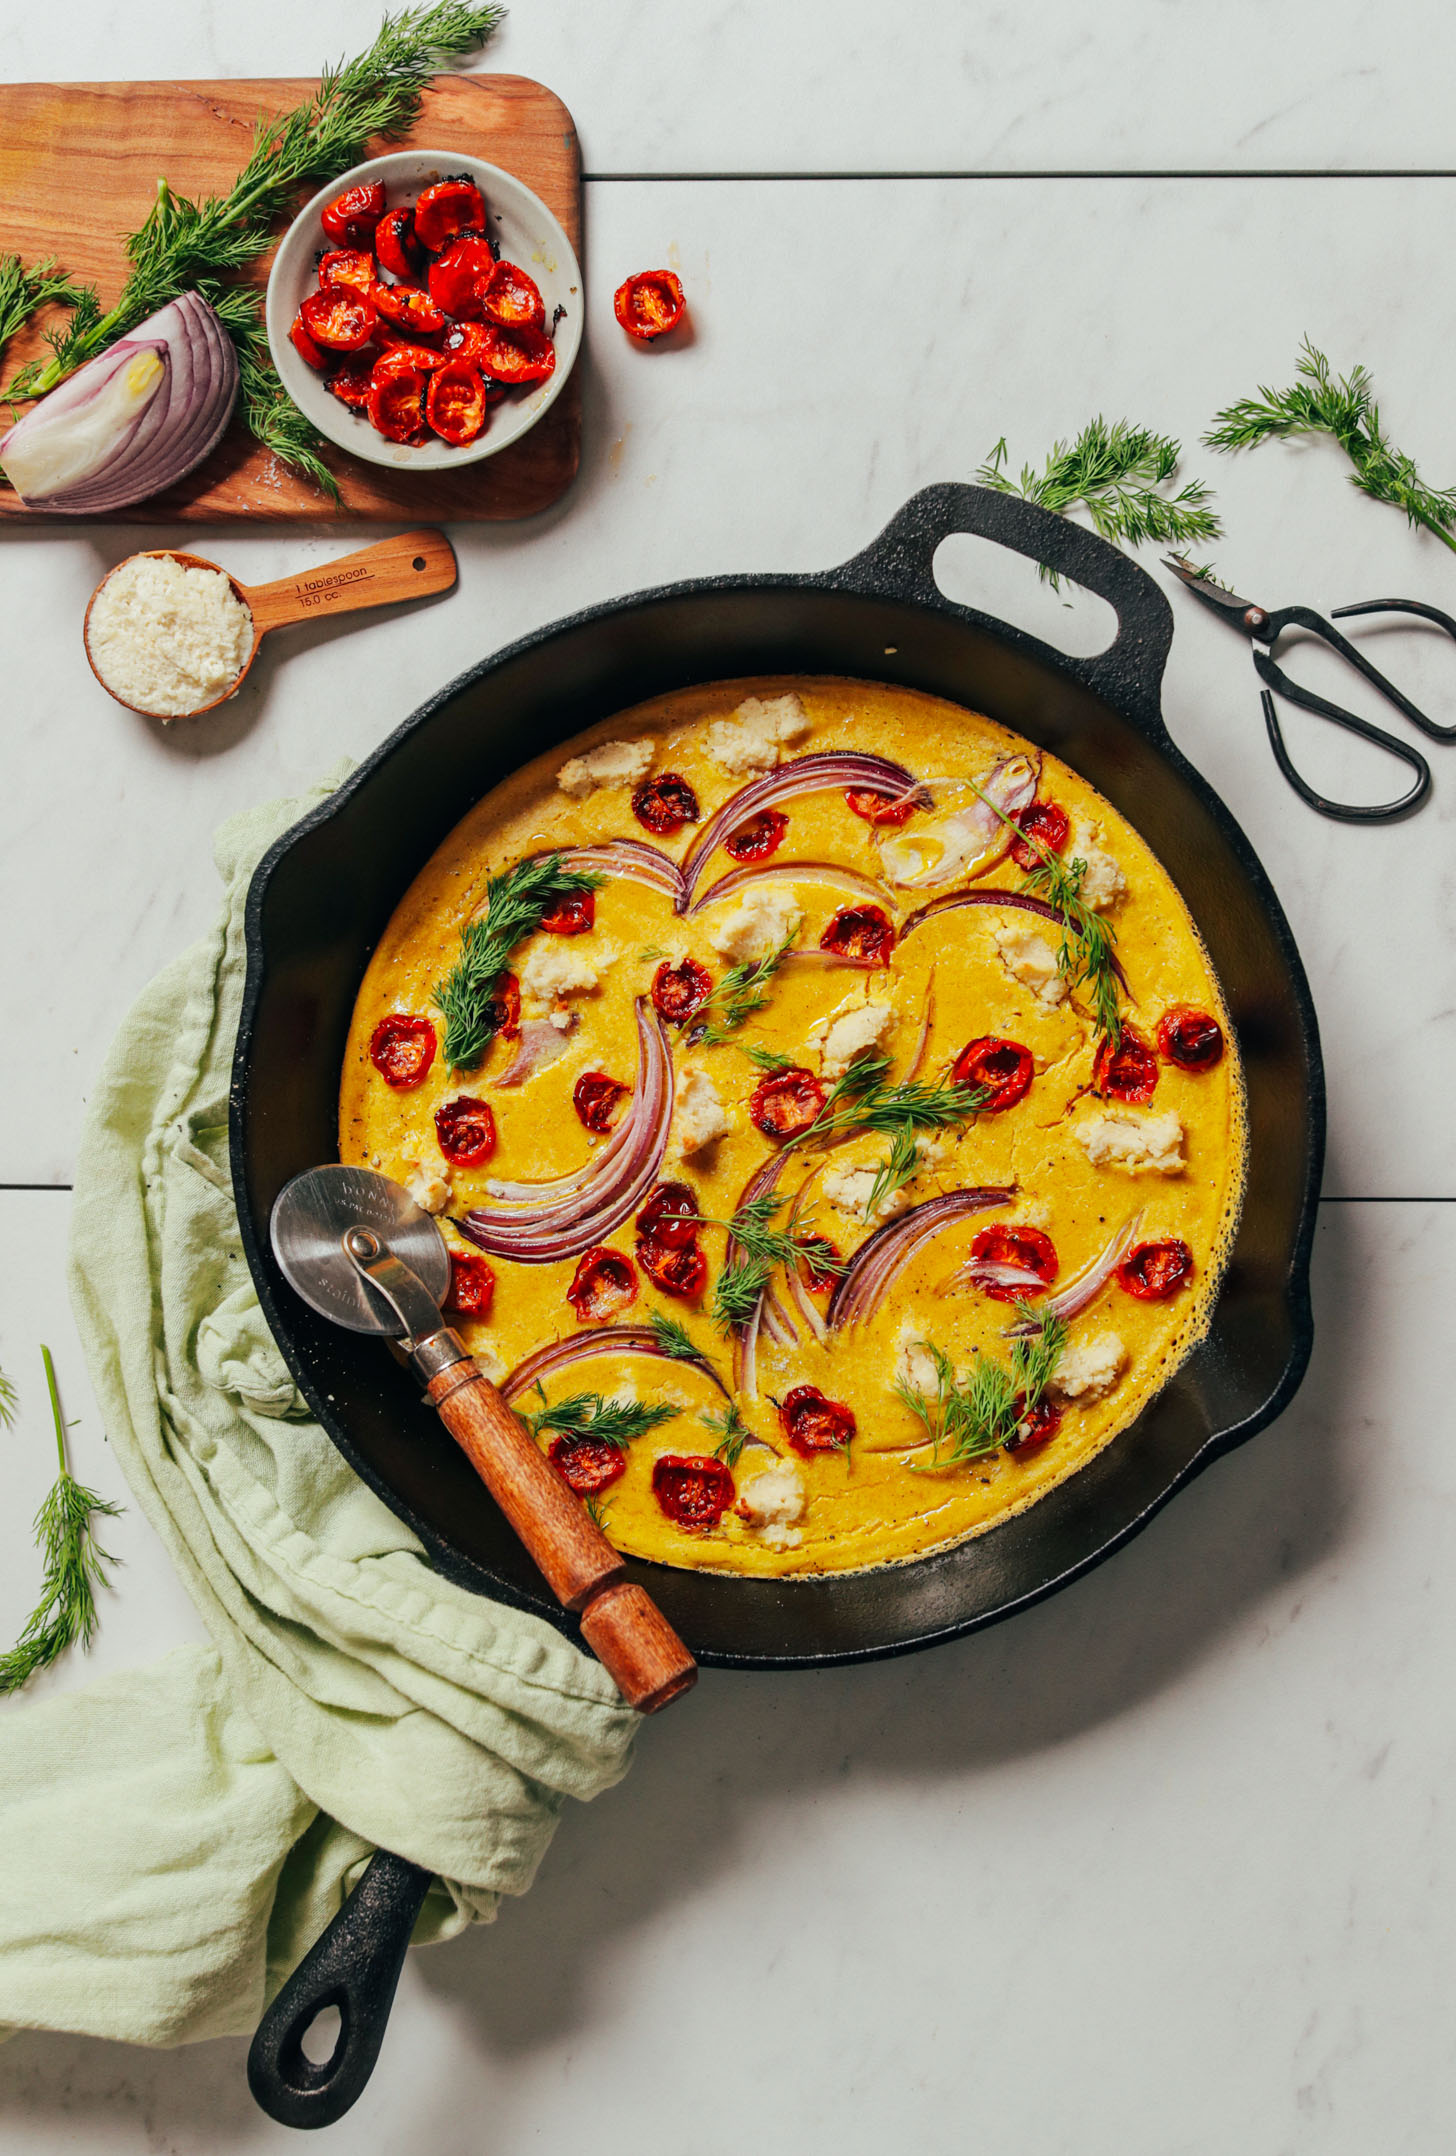 Skillet filled with our Vegan Frittata recipe made with mung beans